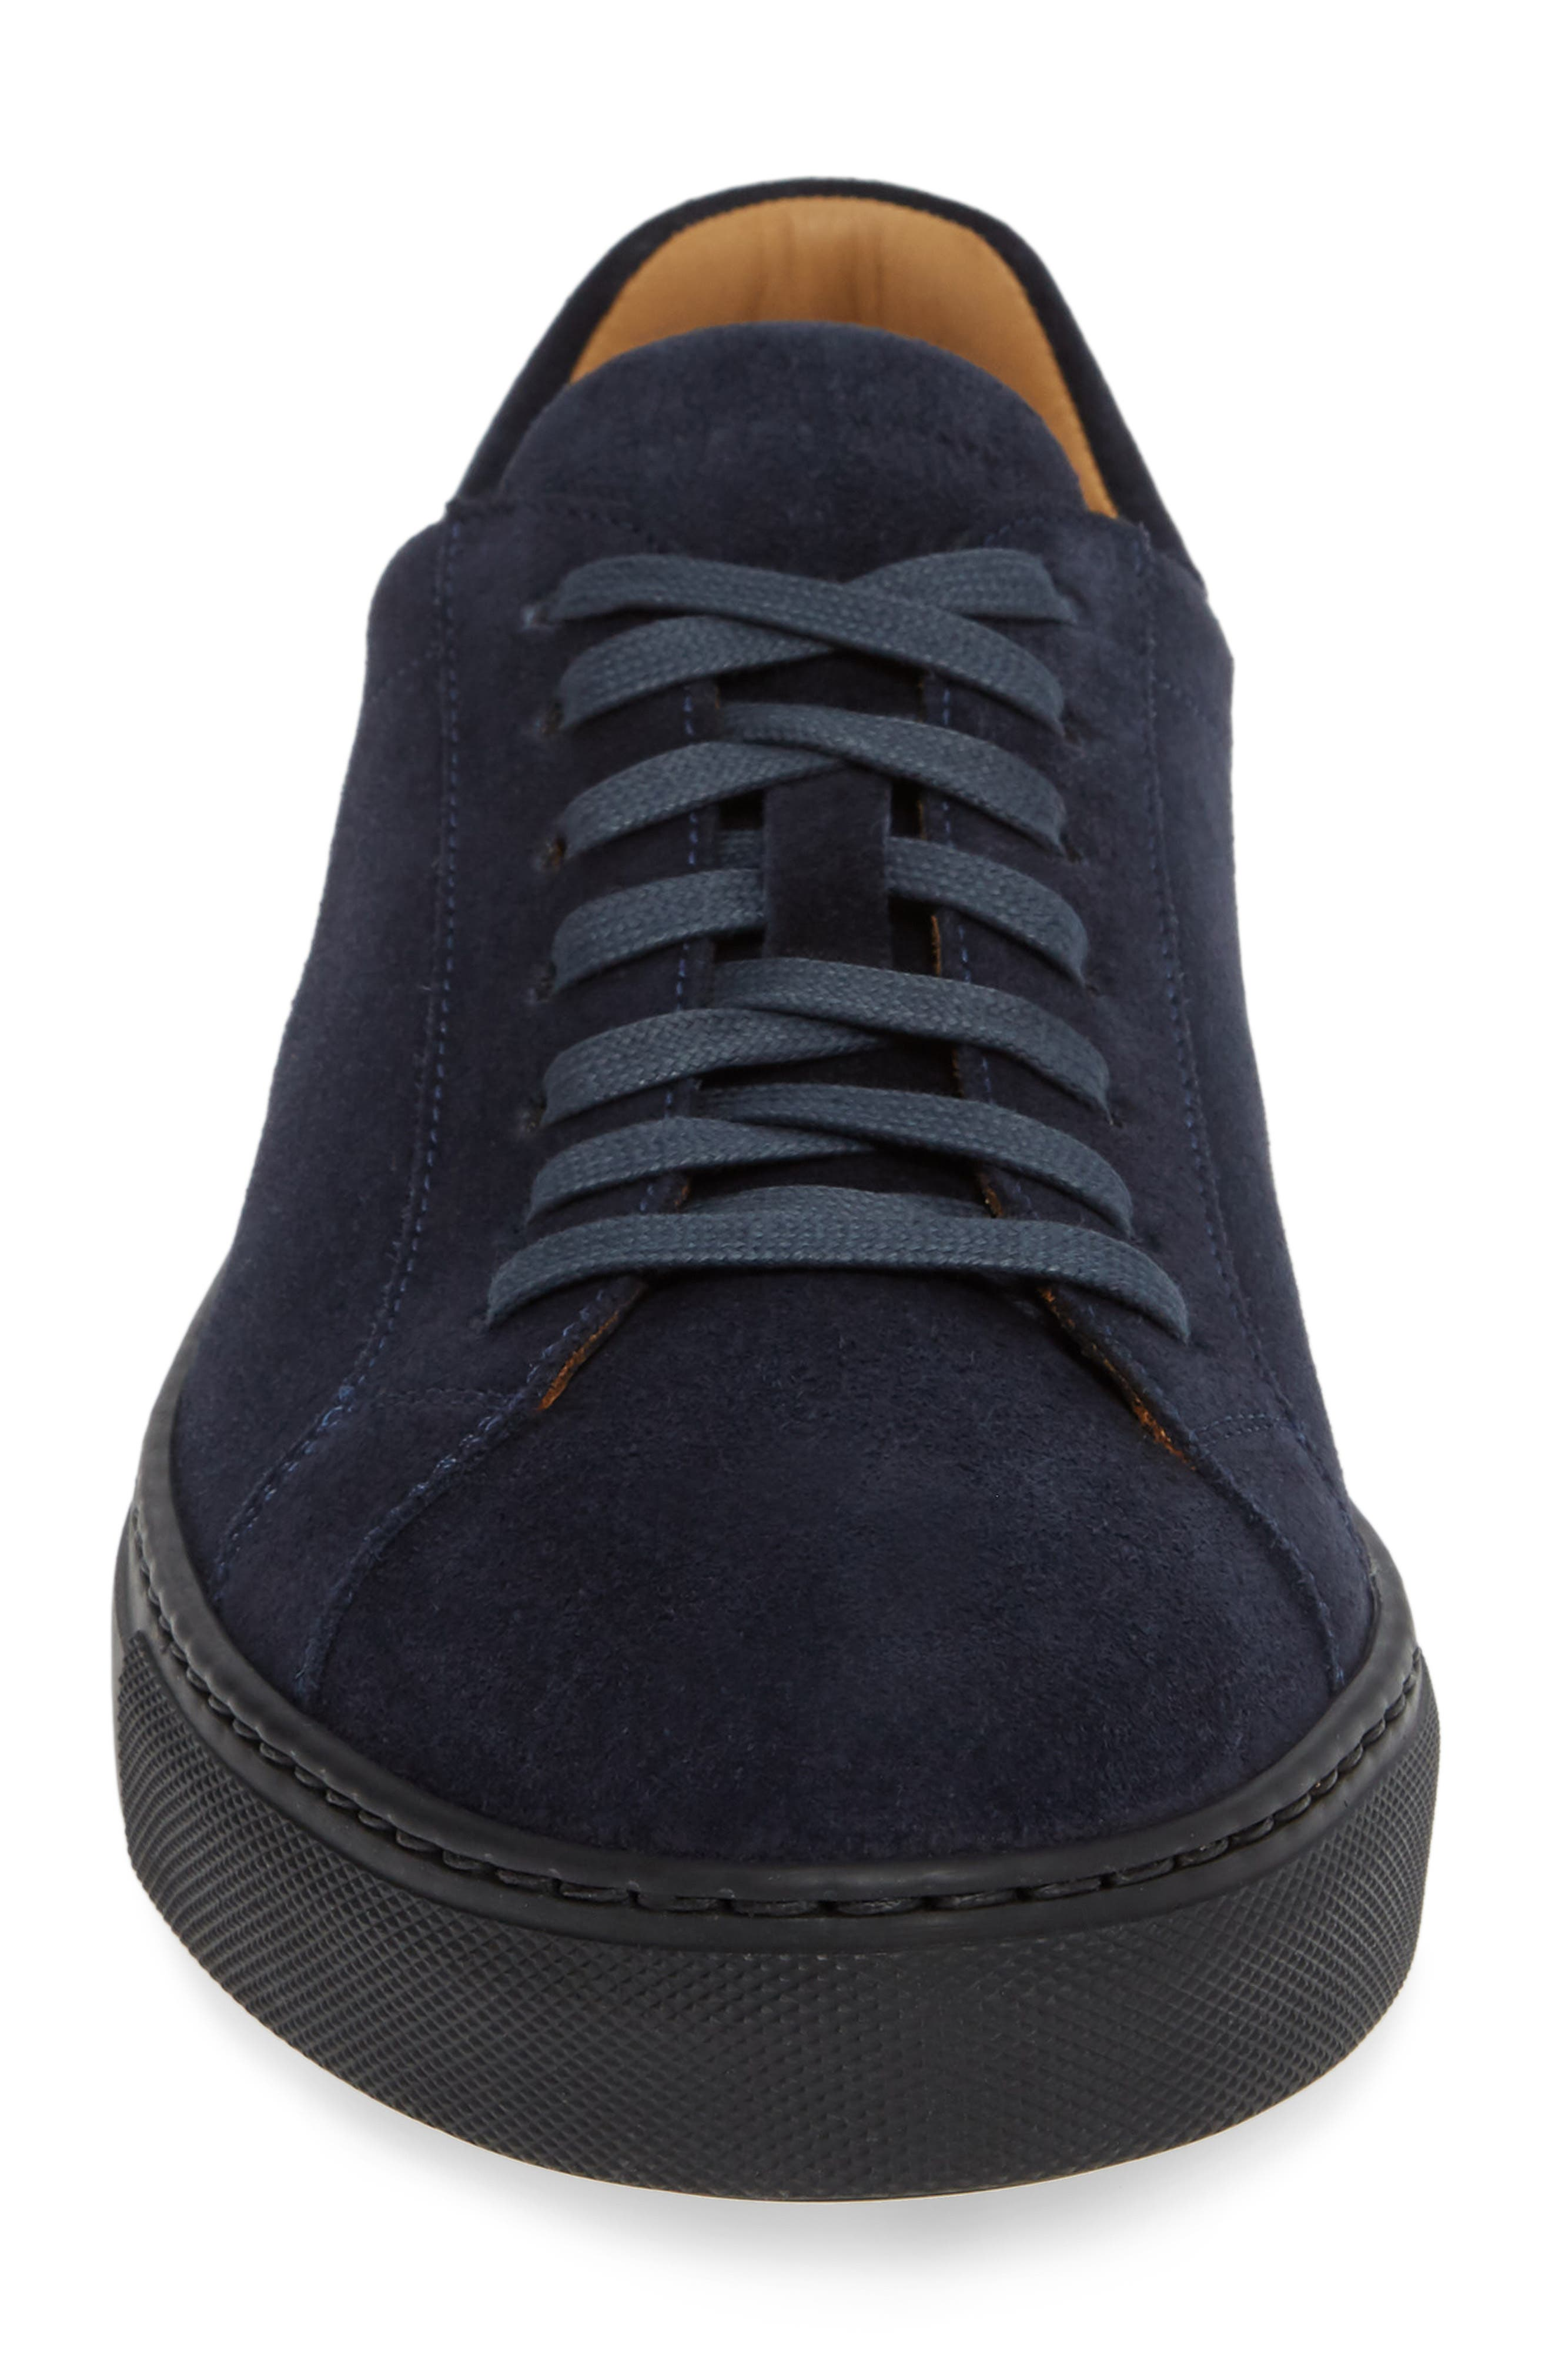 Fede Sneaker,                             Alternate thumbnail 4, color,                             NAVY SUEDE/ LEATHER